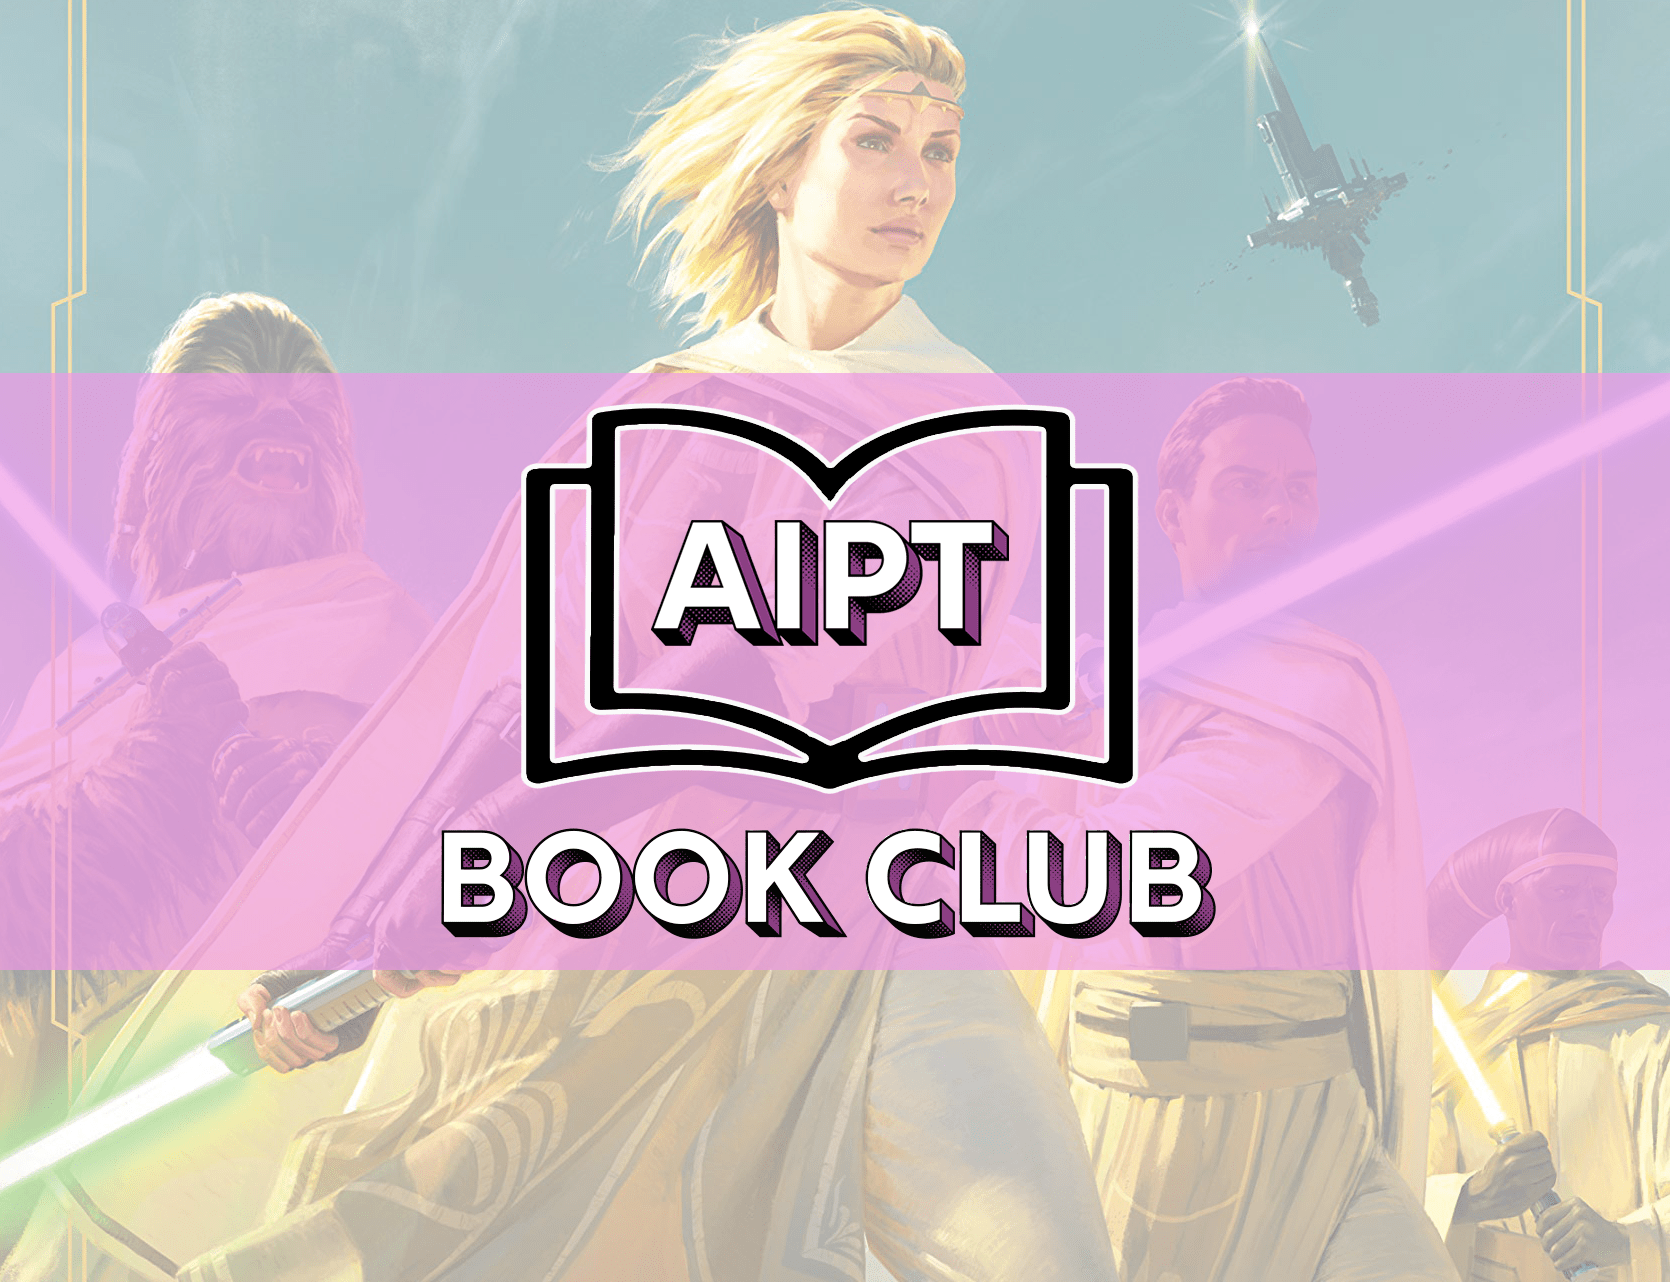 Introducing the AIPT Star Wars book club